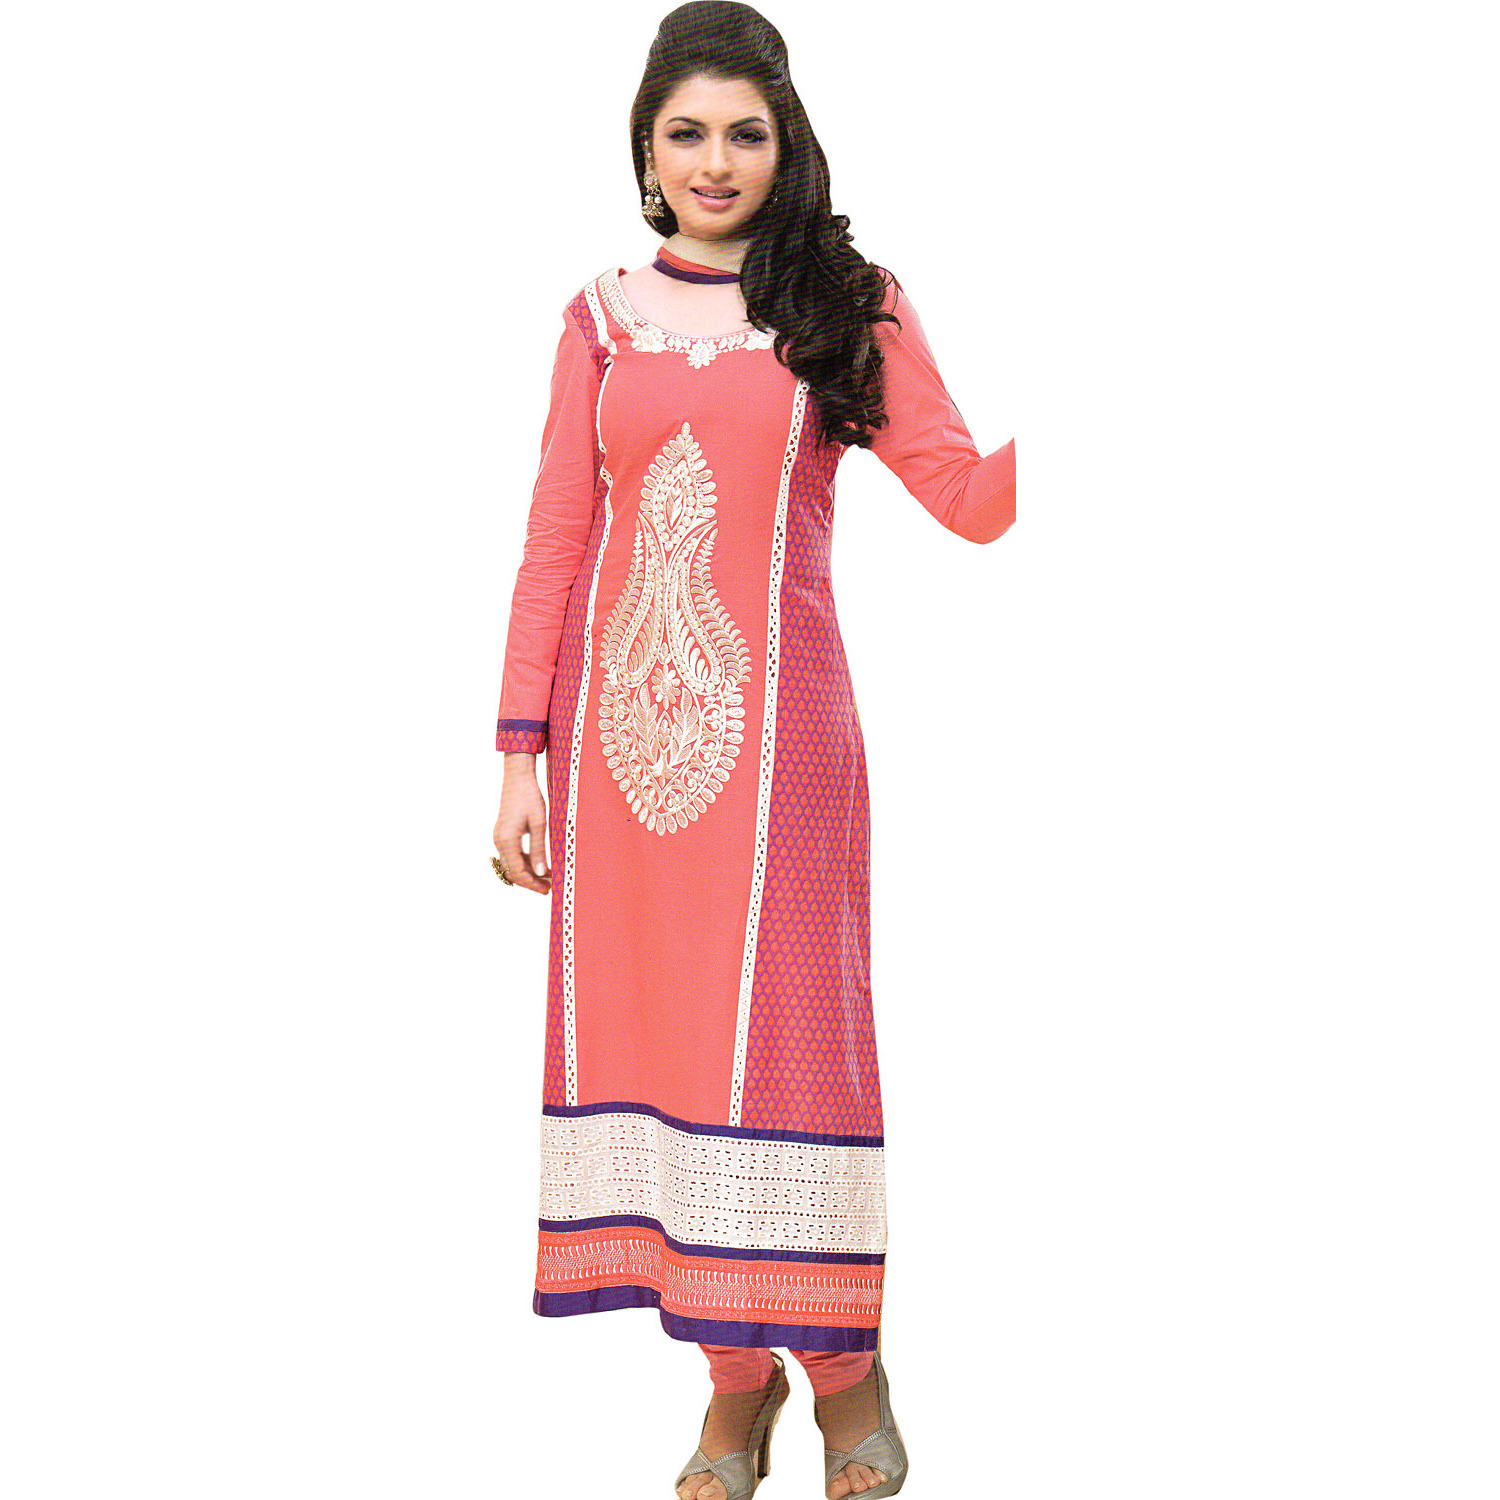 Salmon-Rose Long Choodidaar Kameez Suit with Thread-Embroidery and Crochet Border